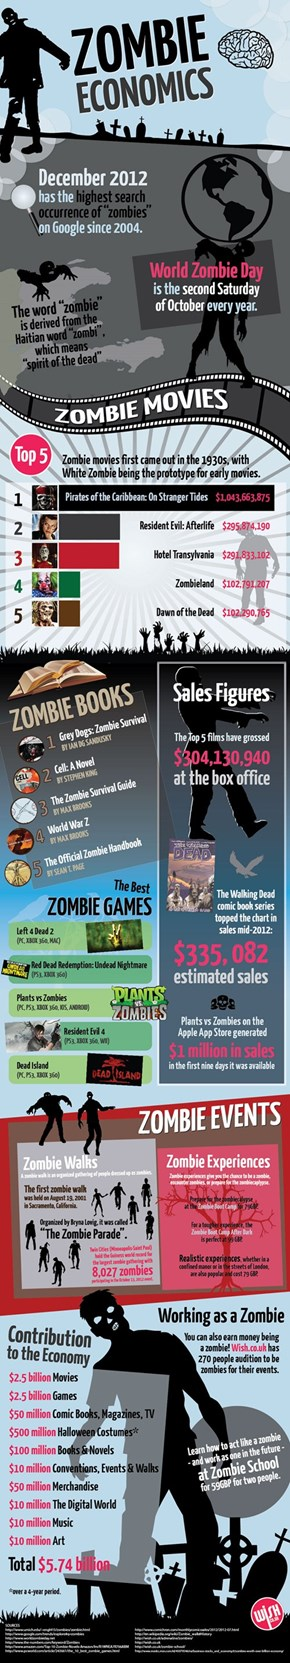 How Much is The Zombie Economy Worth?